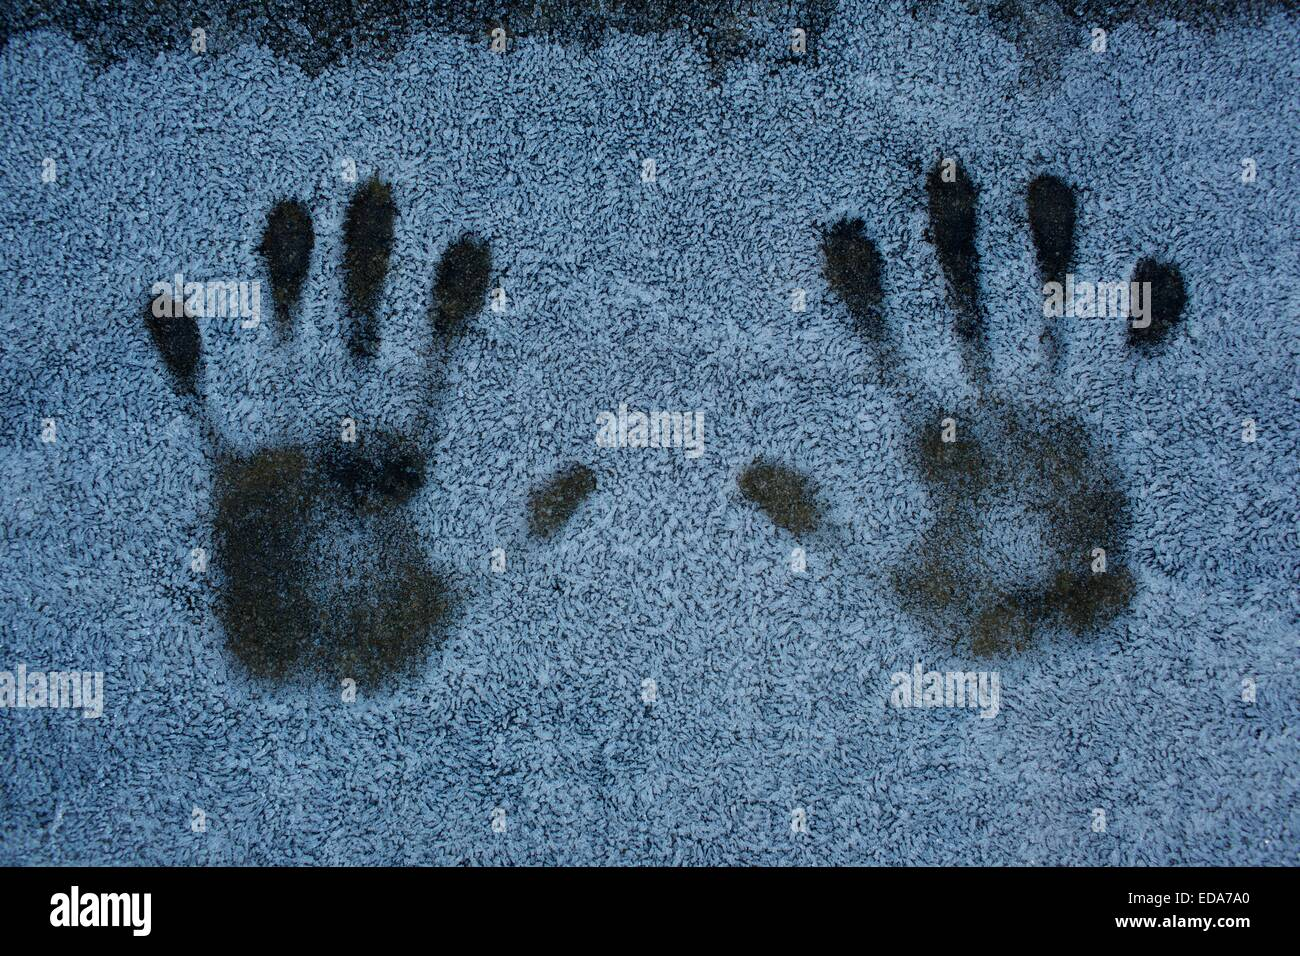 Child's hand prints made in frost, snow, on winters morning. - Stock Image